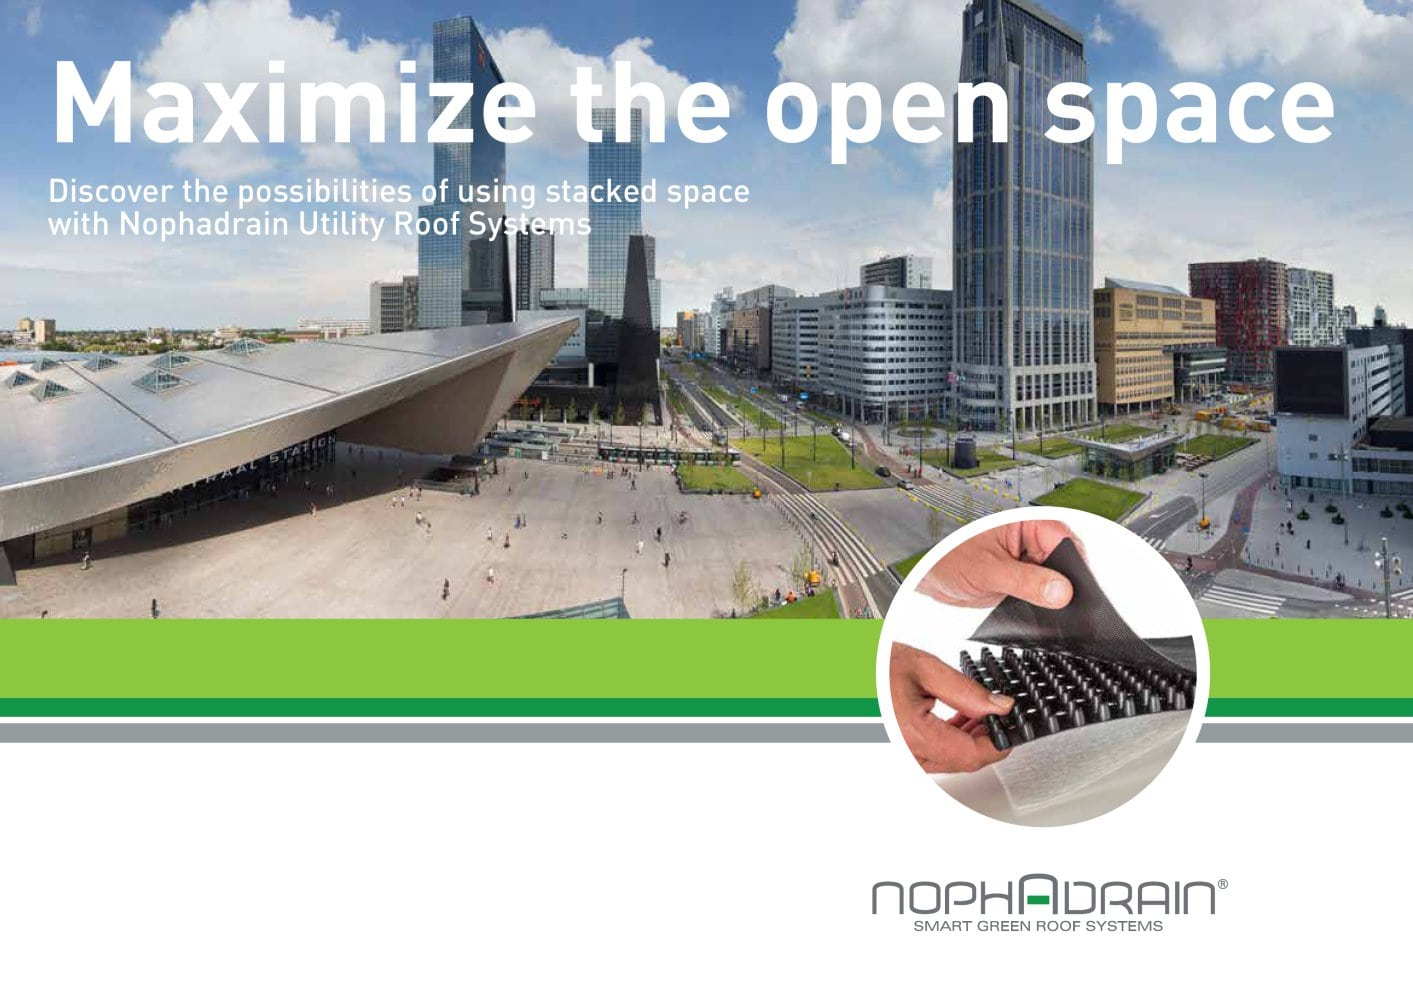 Nophadrain - Smart Green Roof Systems - Magazine cover